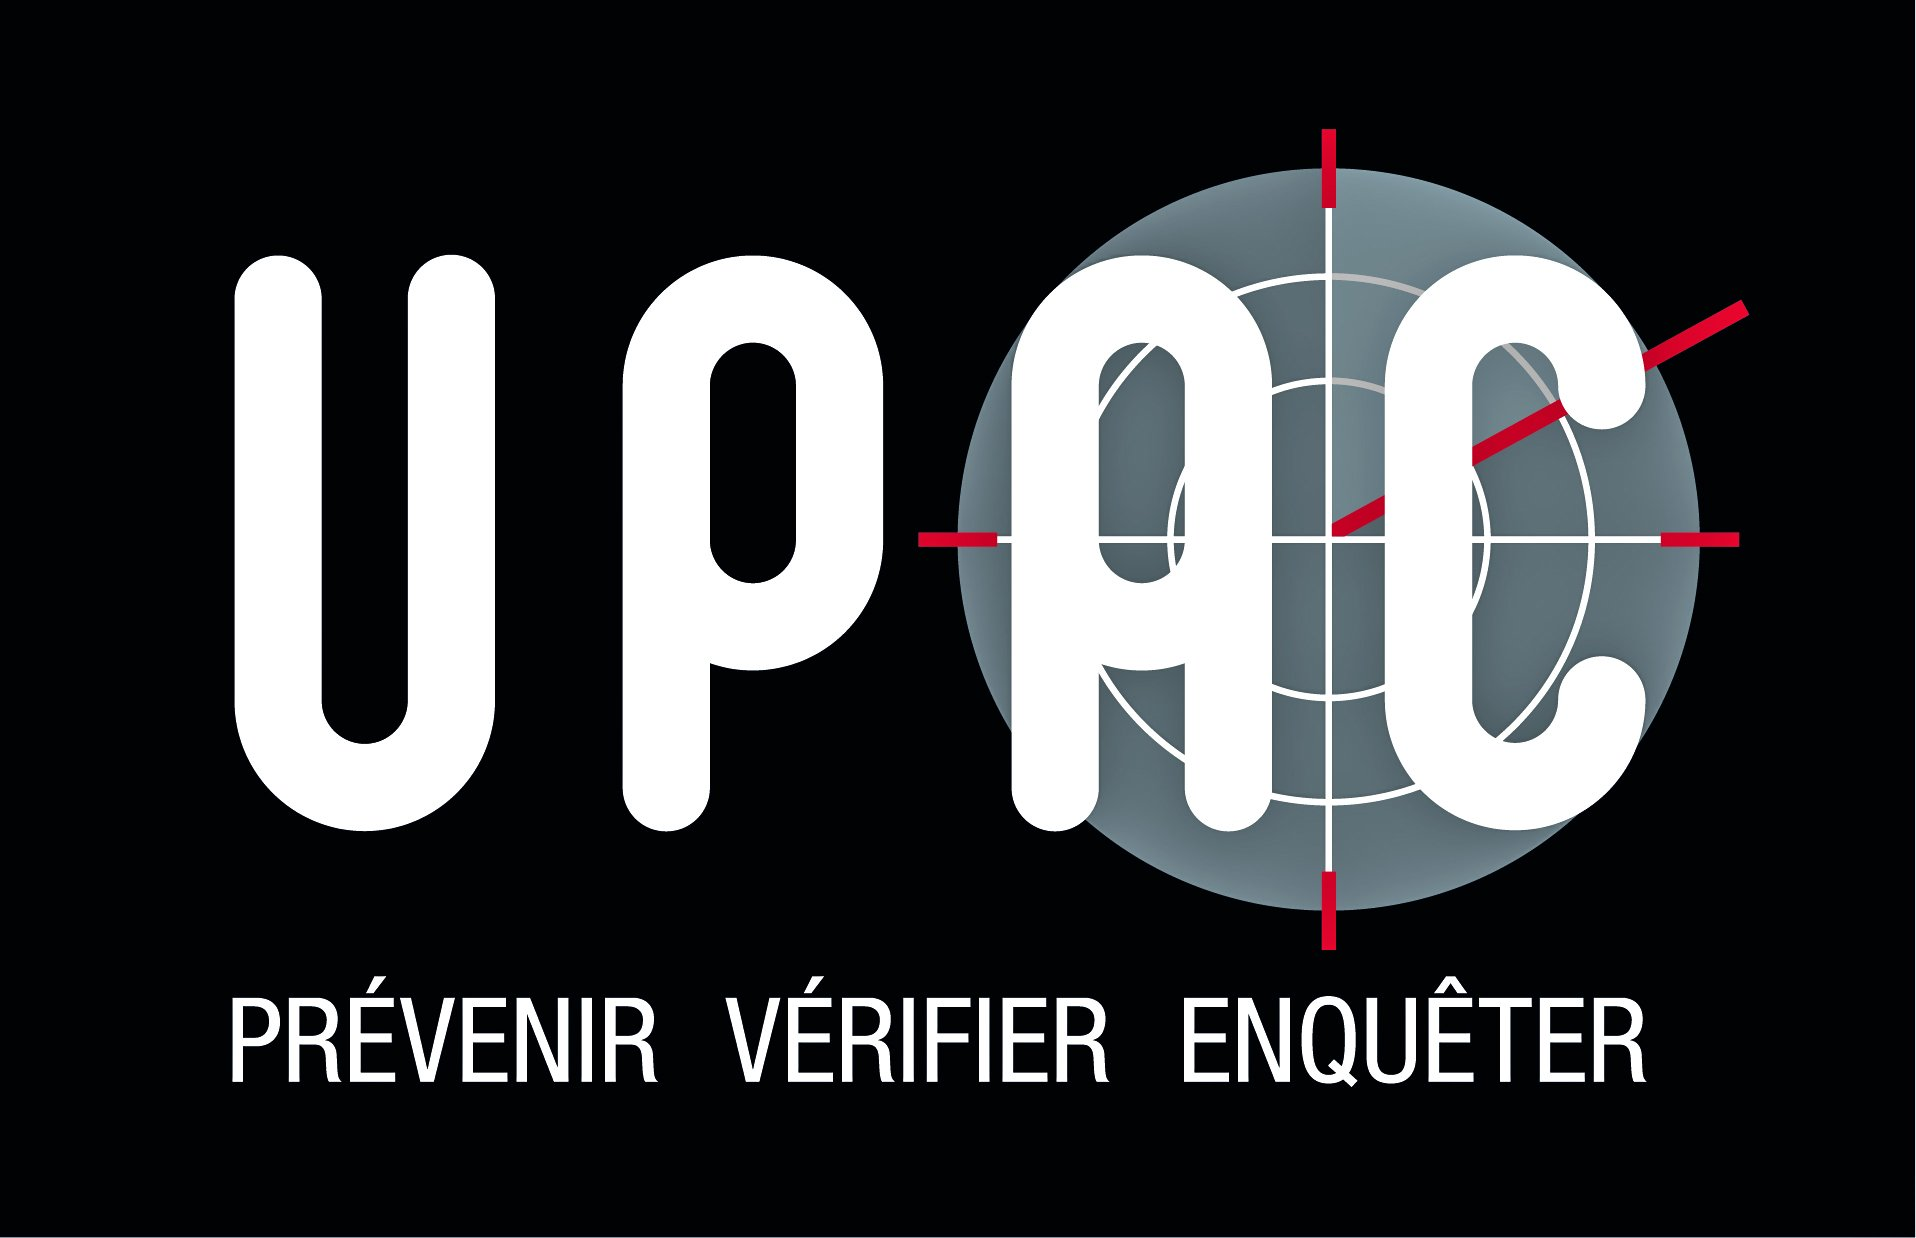 Despite mounting lawsuits, no immediate changes foreseen at UPAC